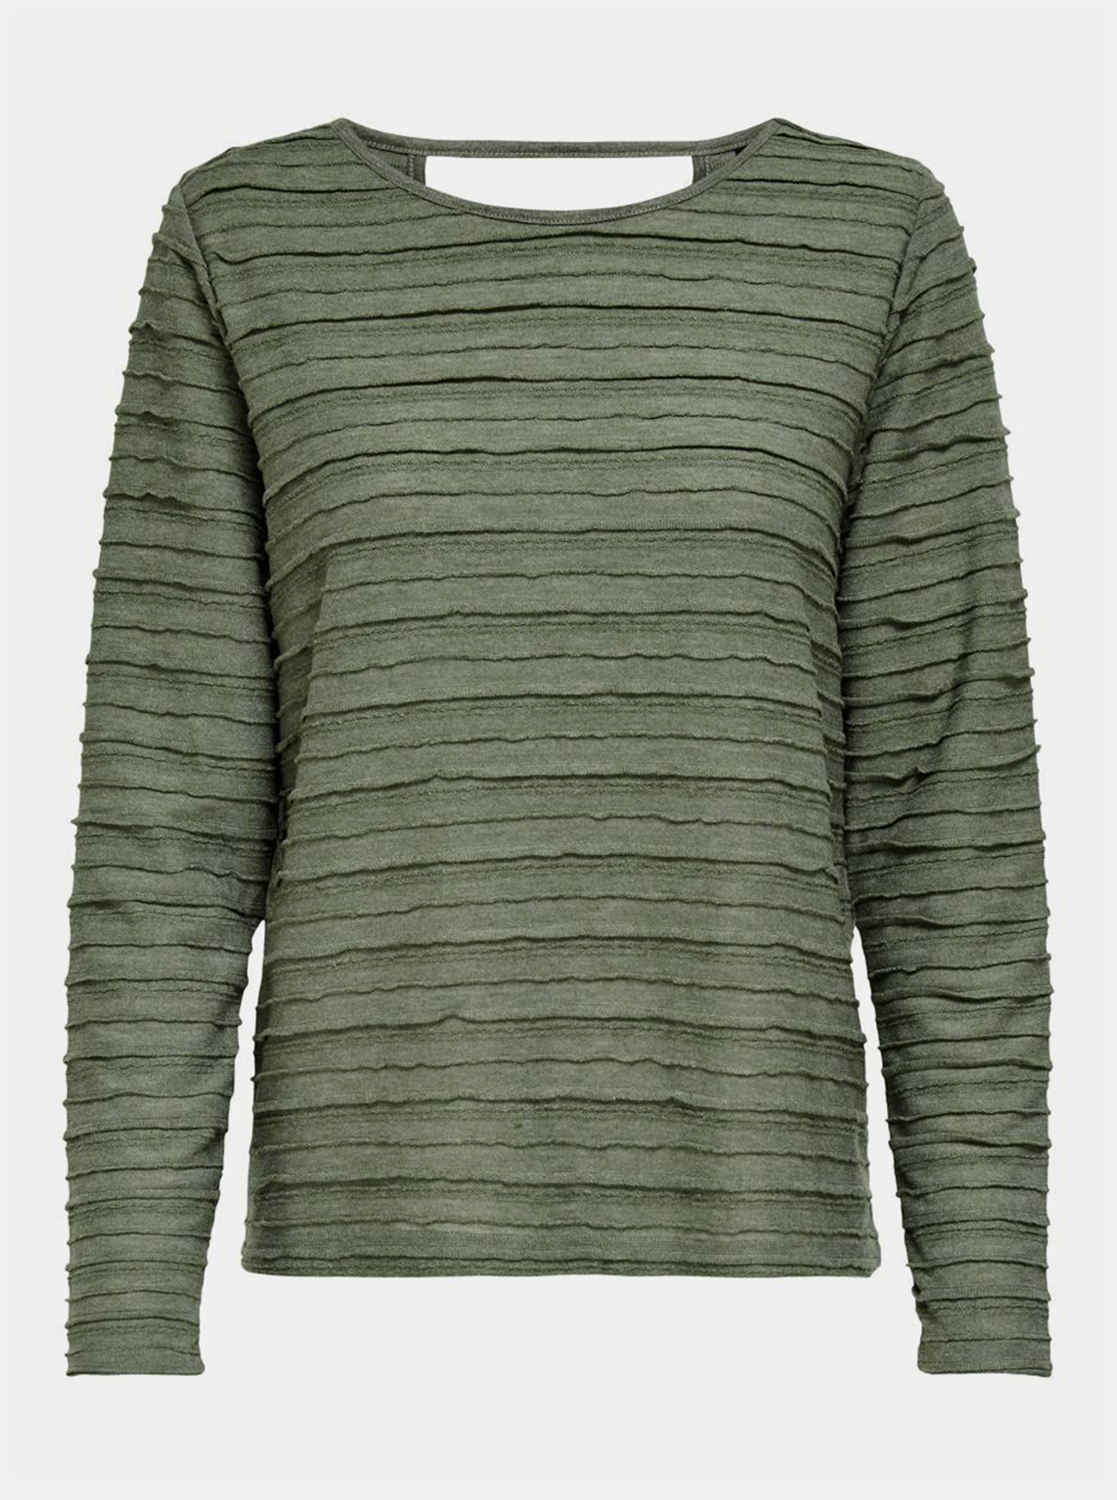 Green T-shirt with a cut on the back ONLY